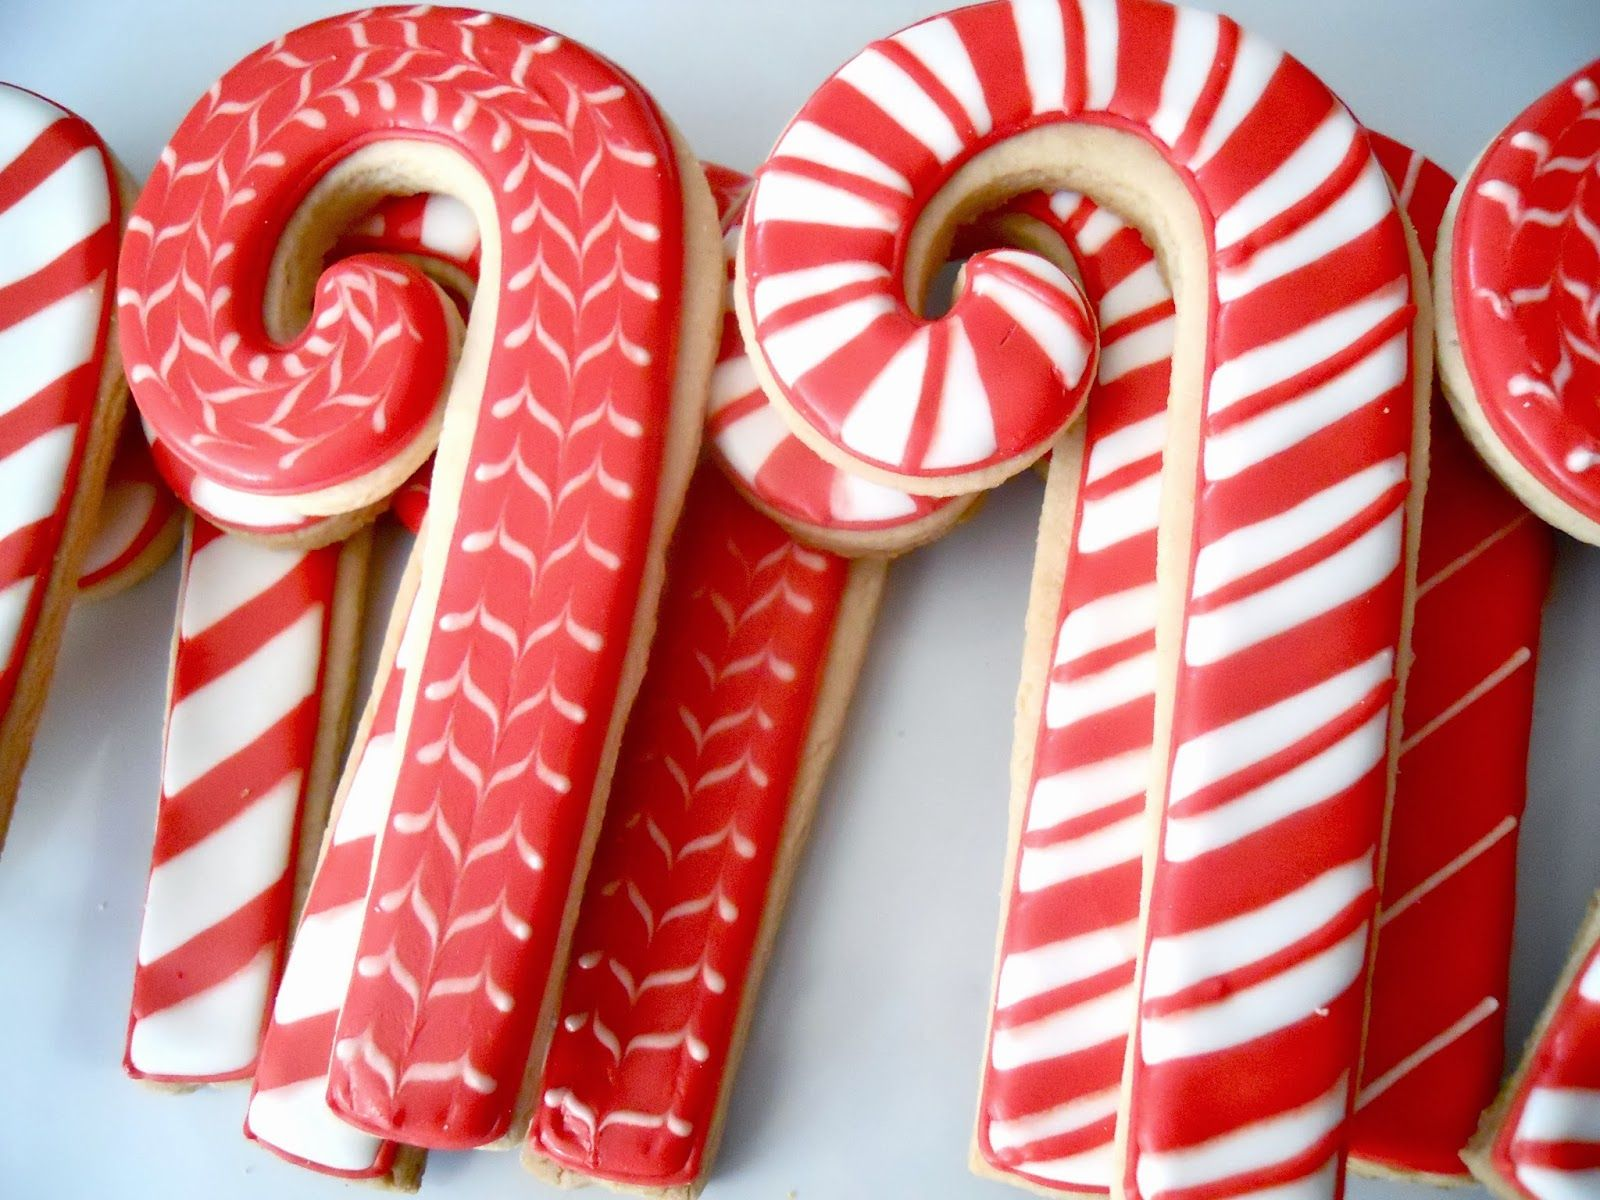 Candy Cane Decorated Sugar Cookie Royal Icing Red White Marbled